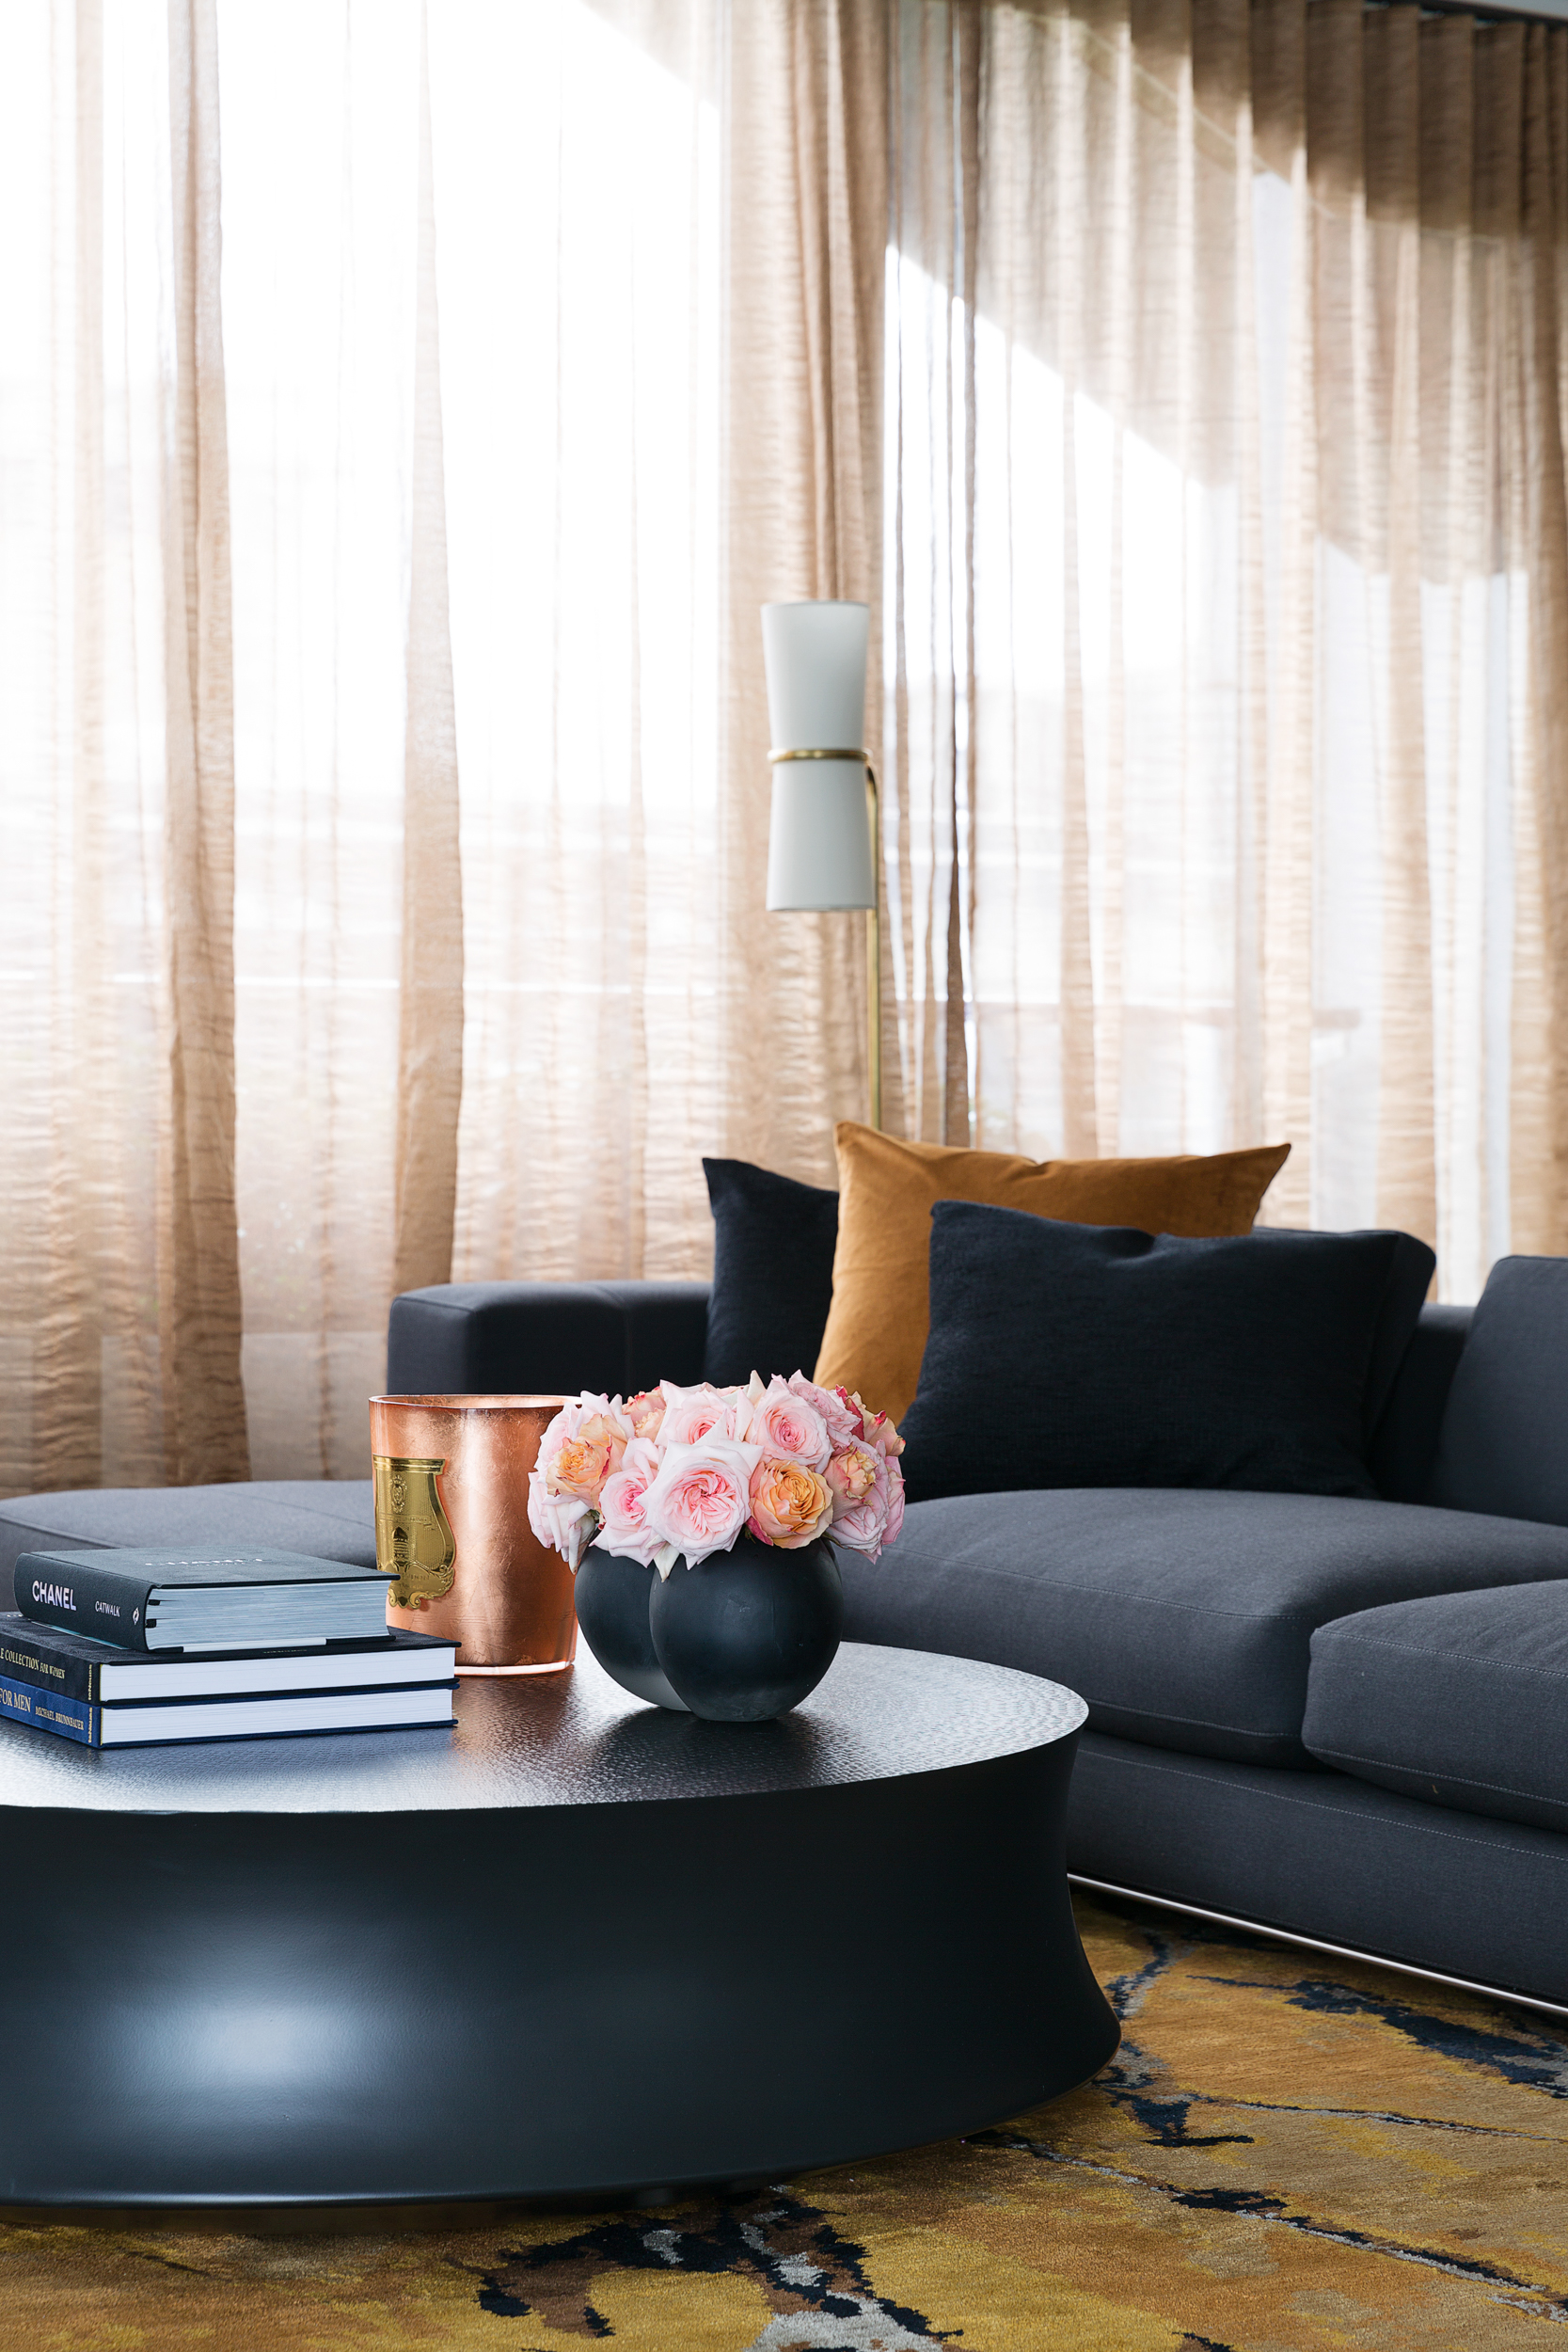 At Wharf Crescent, a copper candle from Cire Trudon gives the living room a toasty glow.